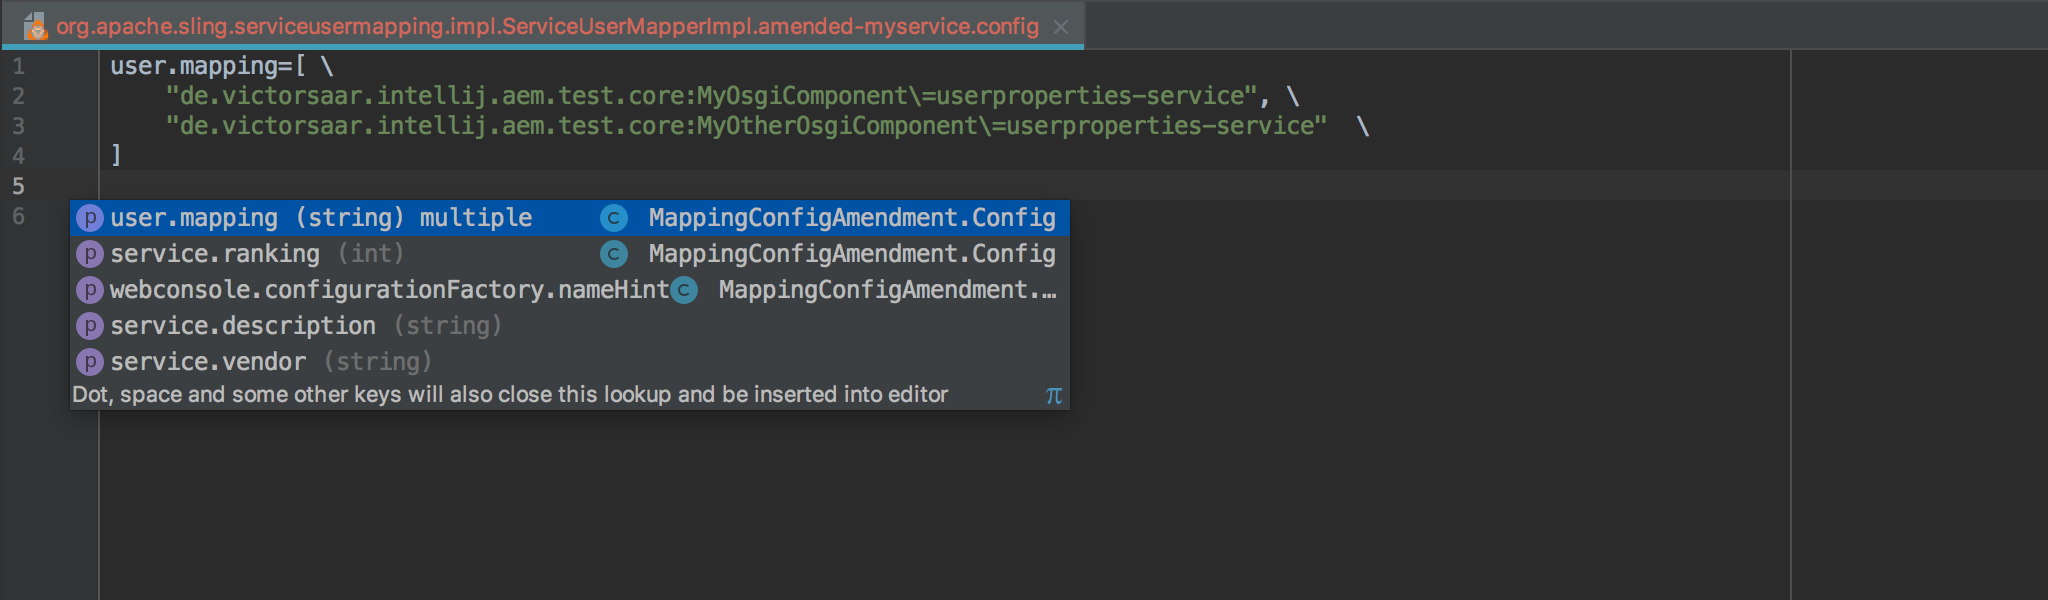 IntelliJ AEM Plugin - Features